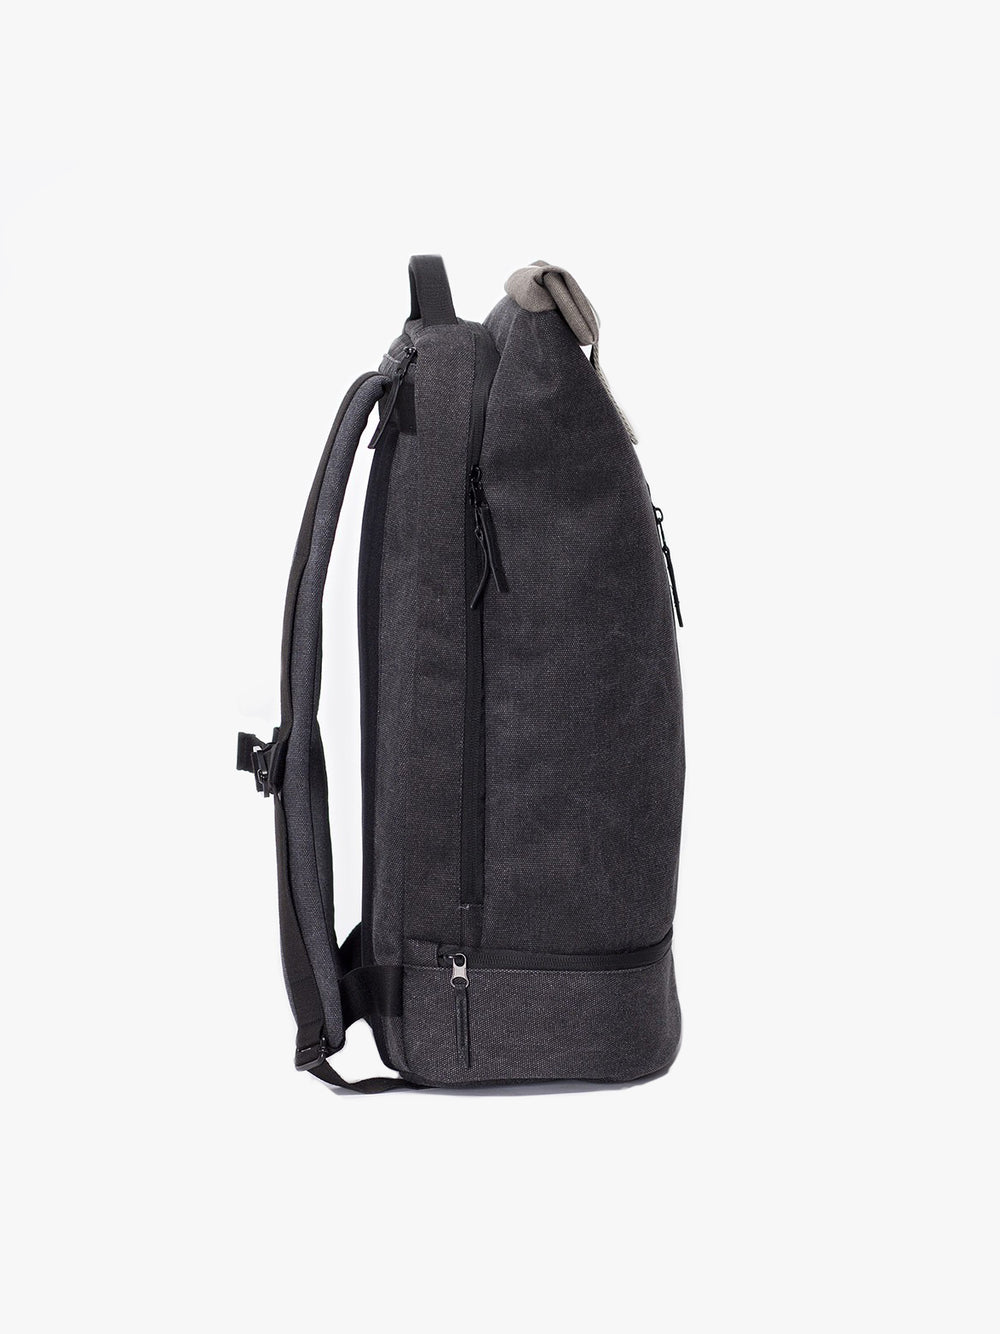 High comfort Hajo Pro backpack for everyday use.